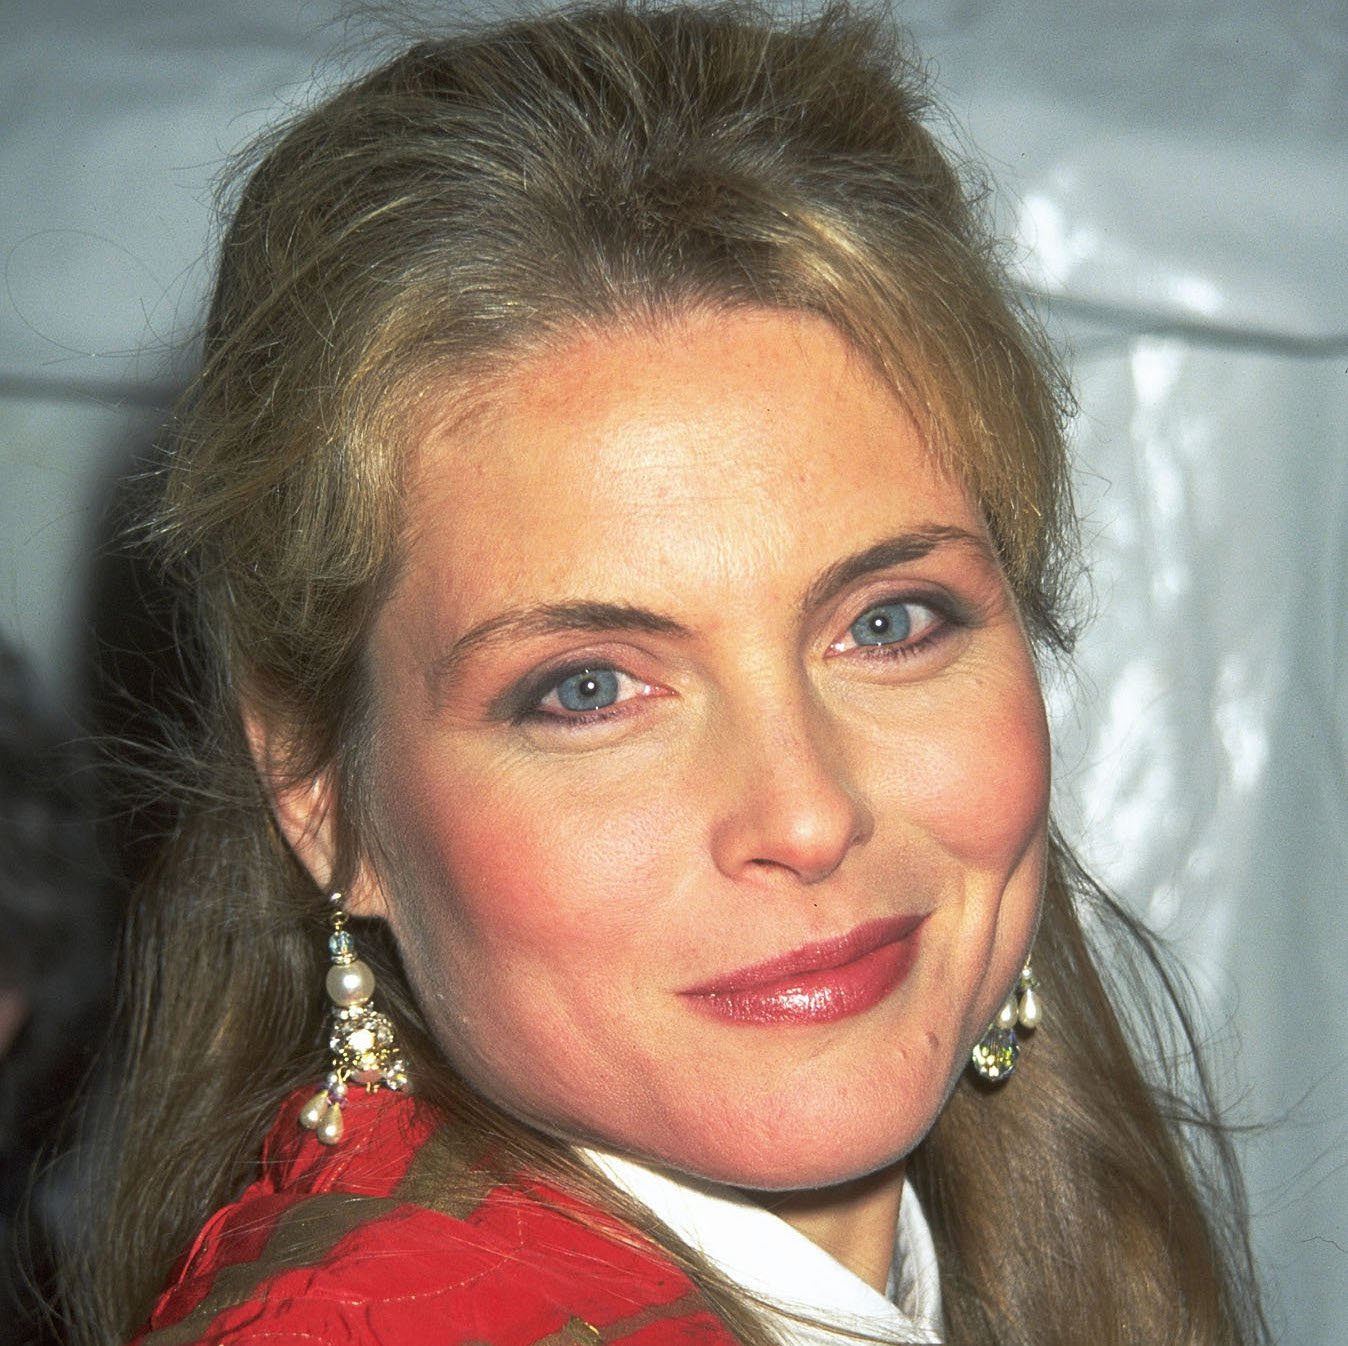 GettyImages 815019 The 10 Biggest Supermodels Of The 80s And What They Look Like Now